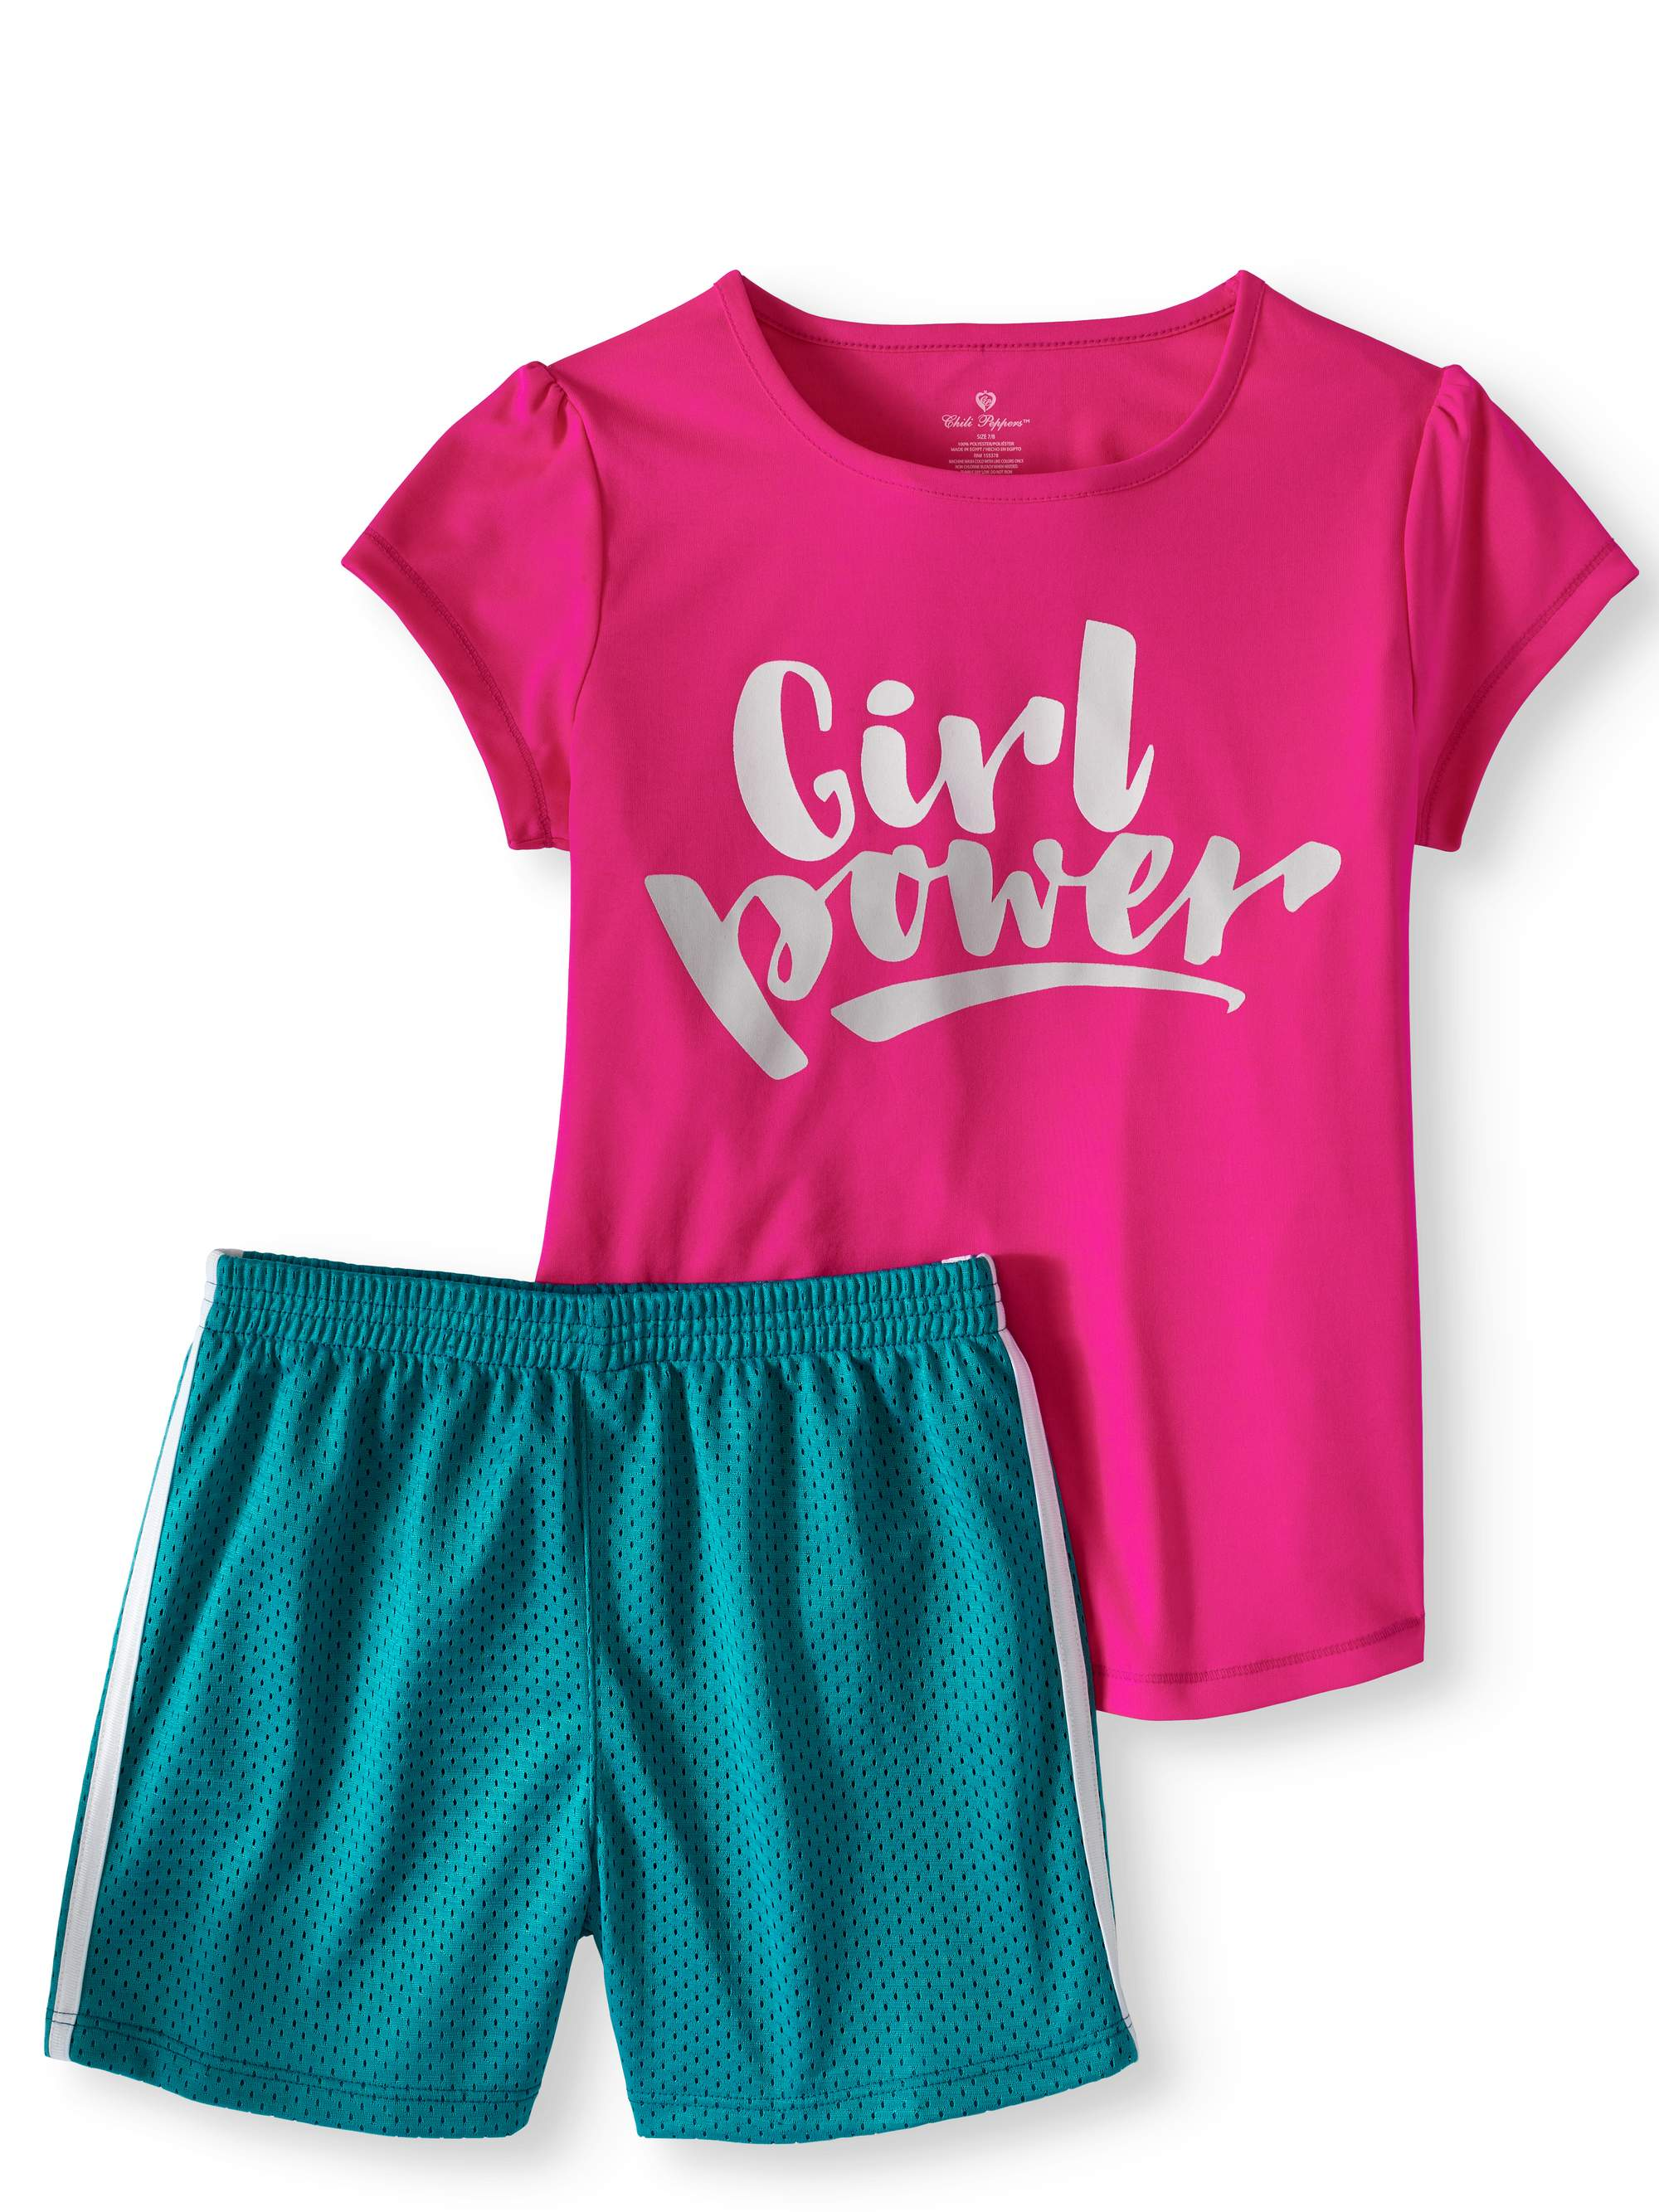 Girls' Graphic T-Shirt and Colorblock Mesh Shorts 2-Piece Active Set